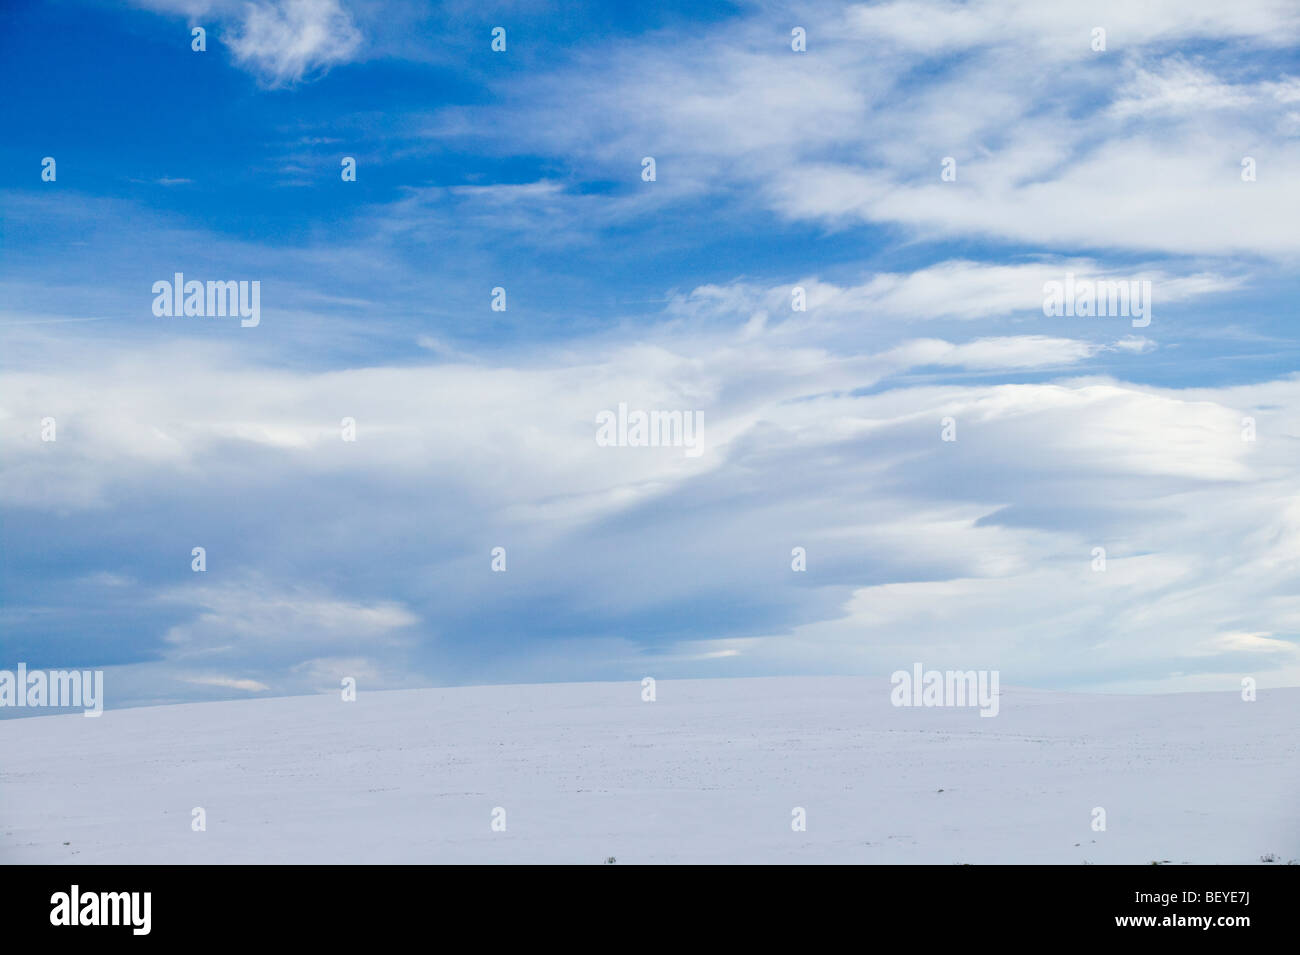 Winter landscape of clouds, snow & ranch fields near Fairplay, Colorado, USA - Stock Image